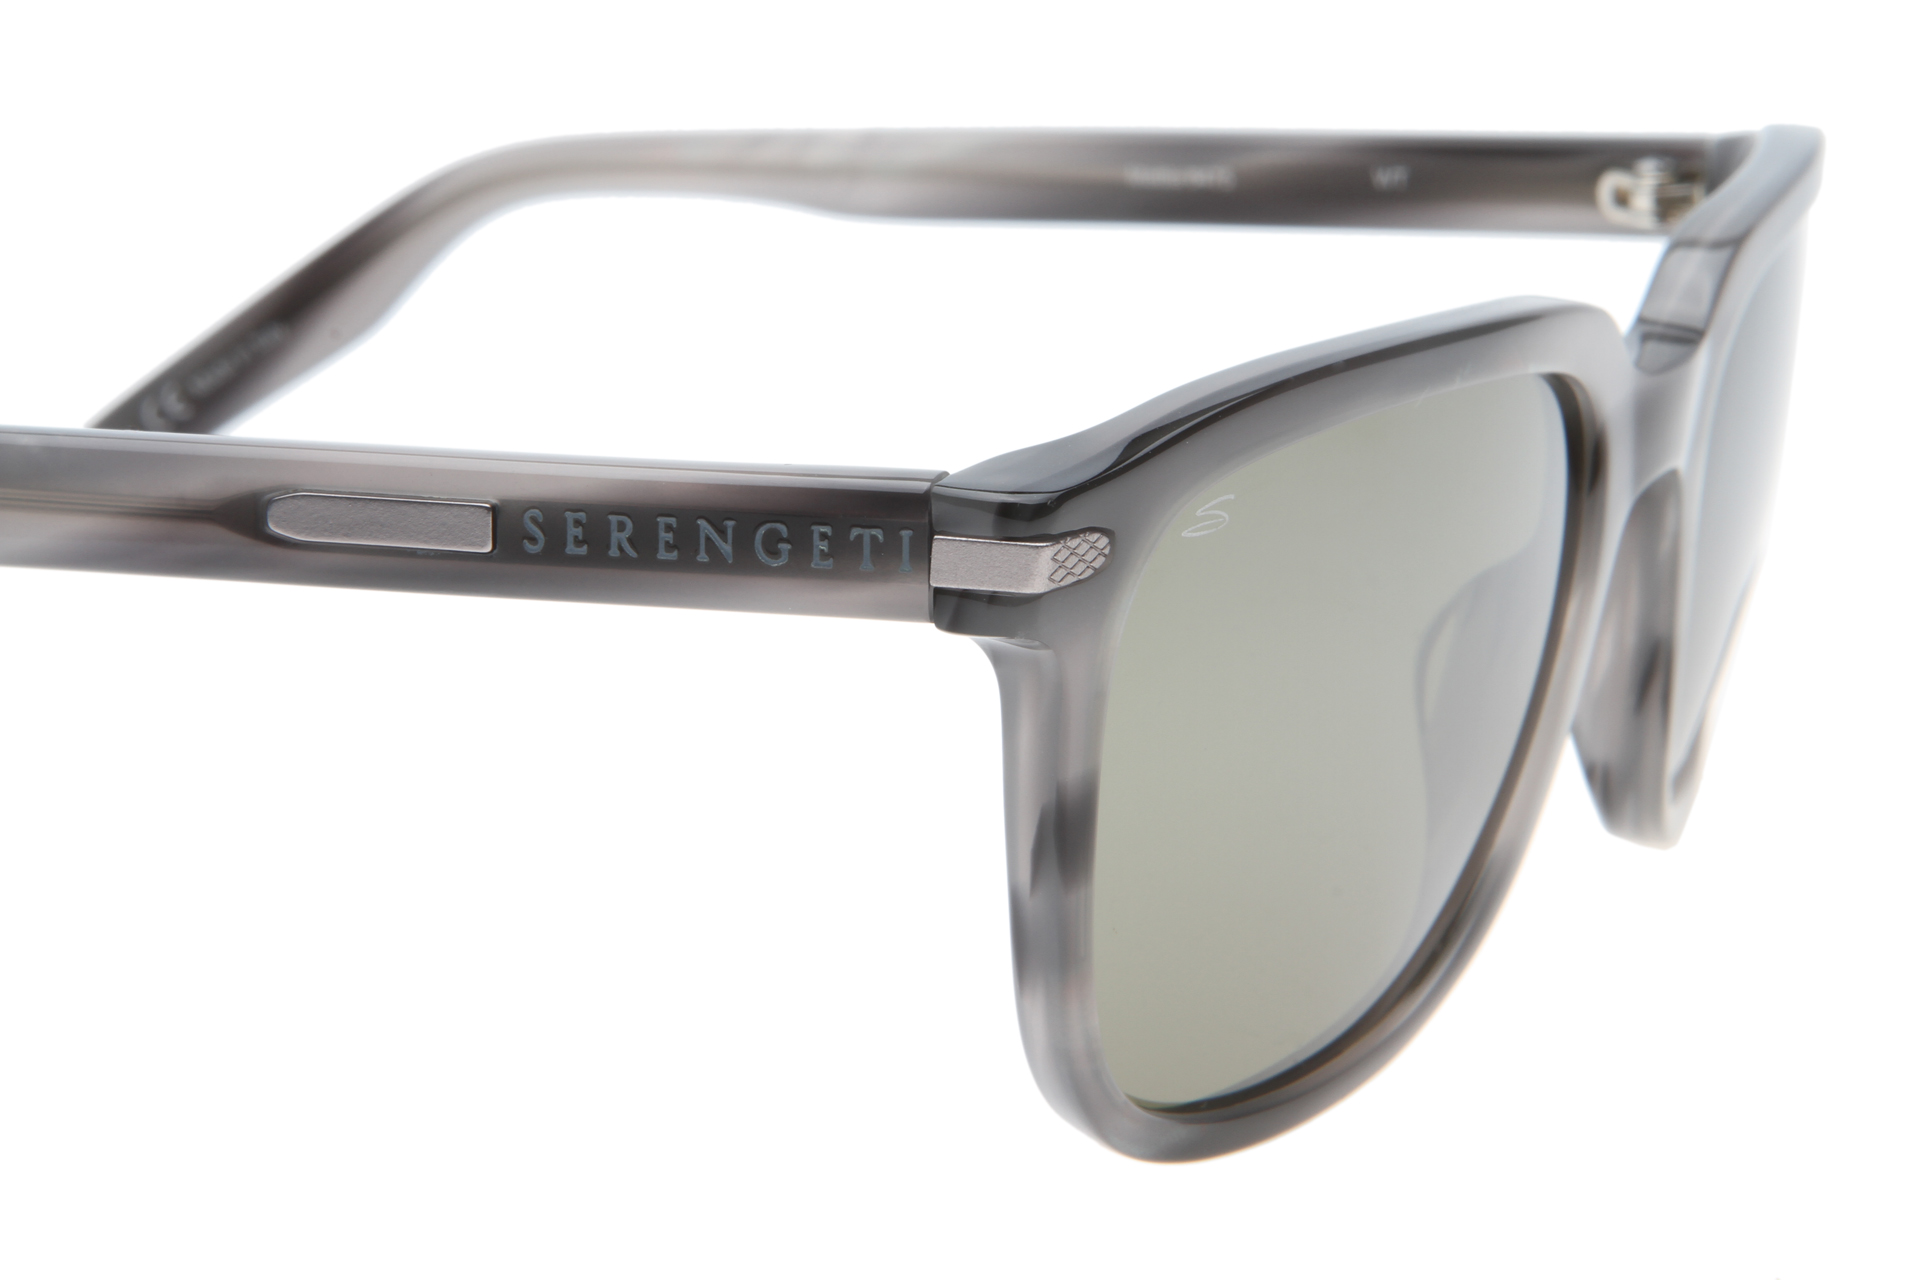 Serengeti Mattia 8475 (Feather Gray) Gepolariseerd